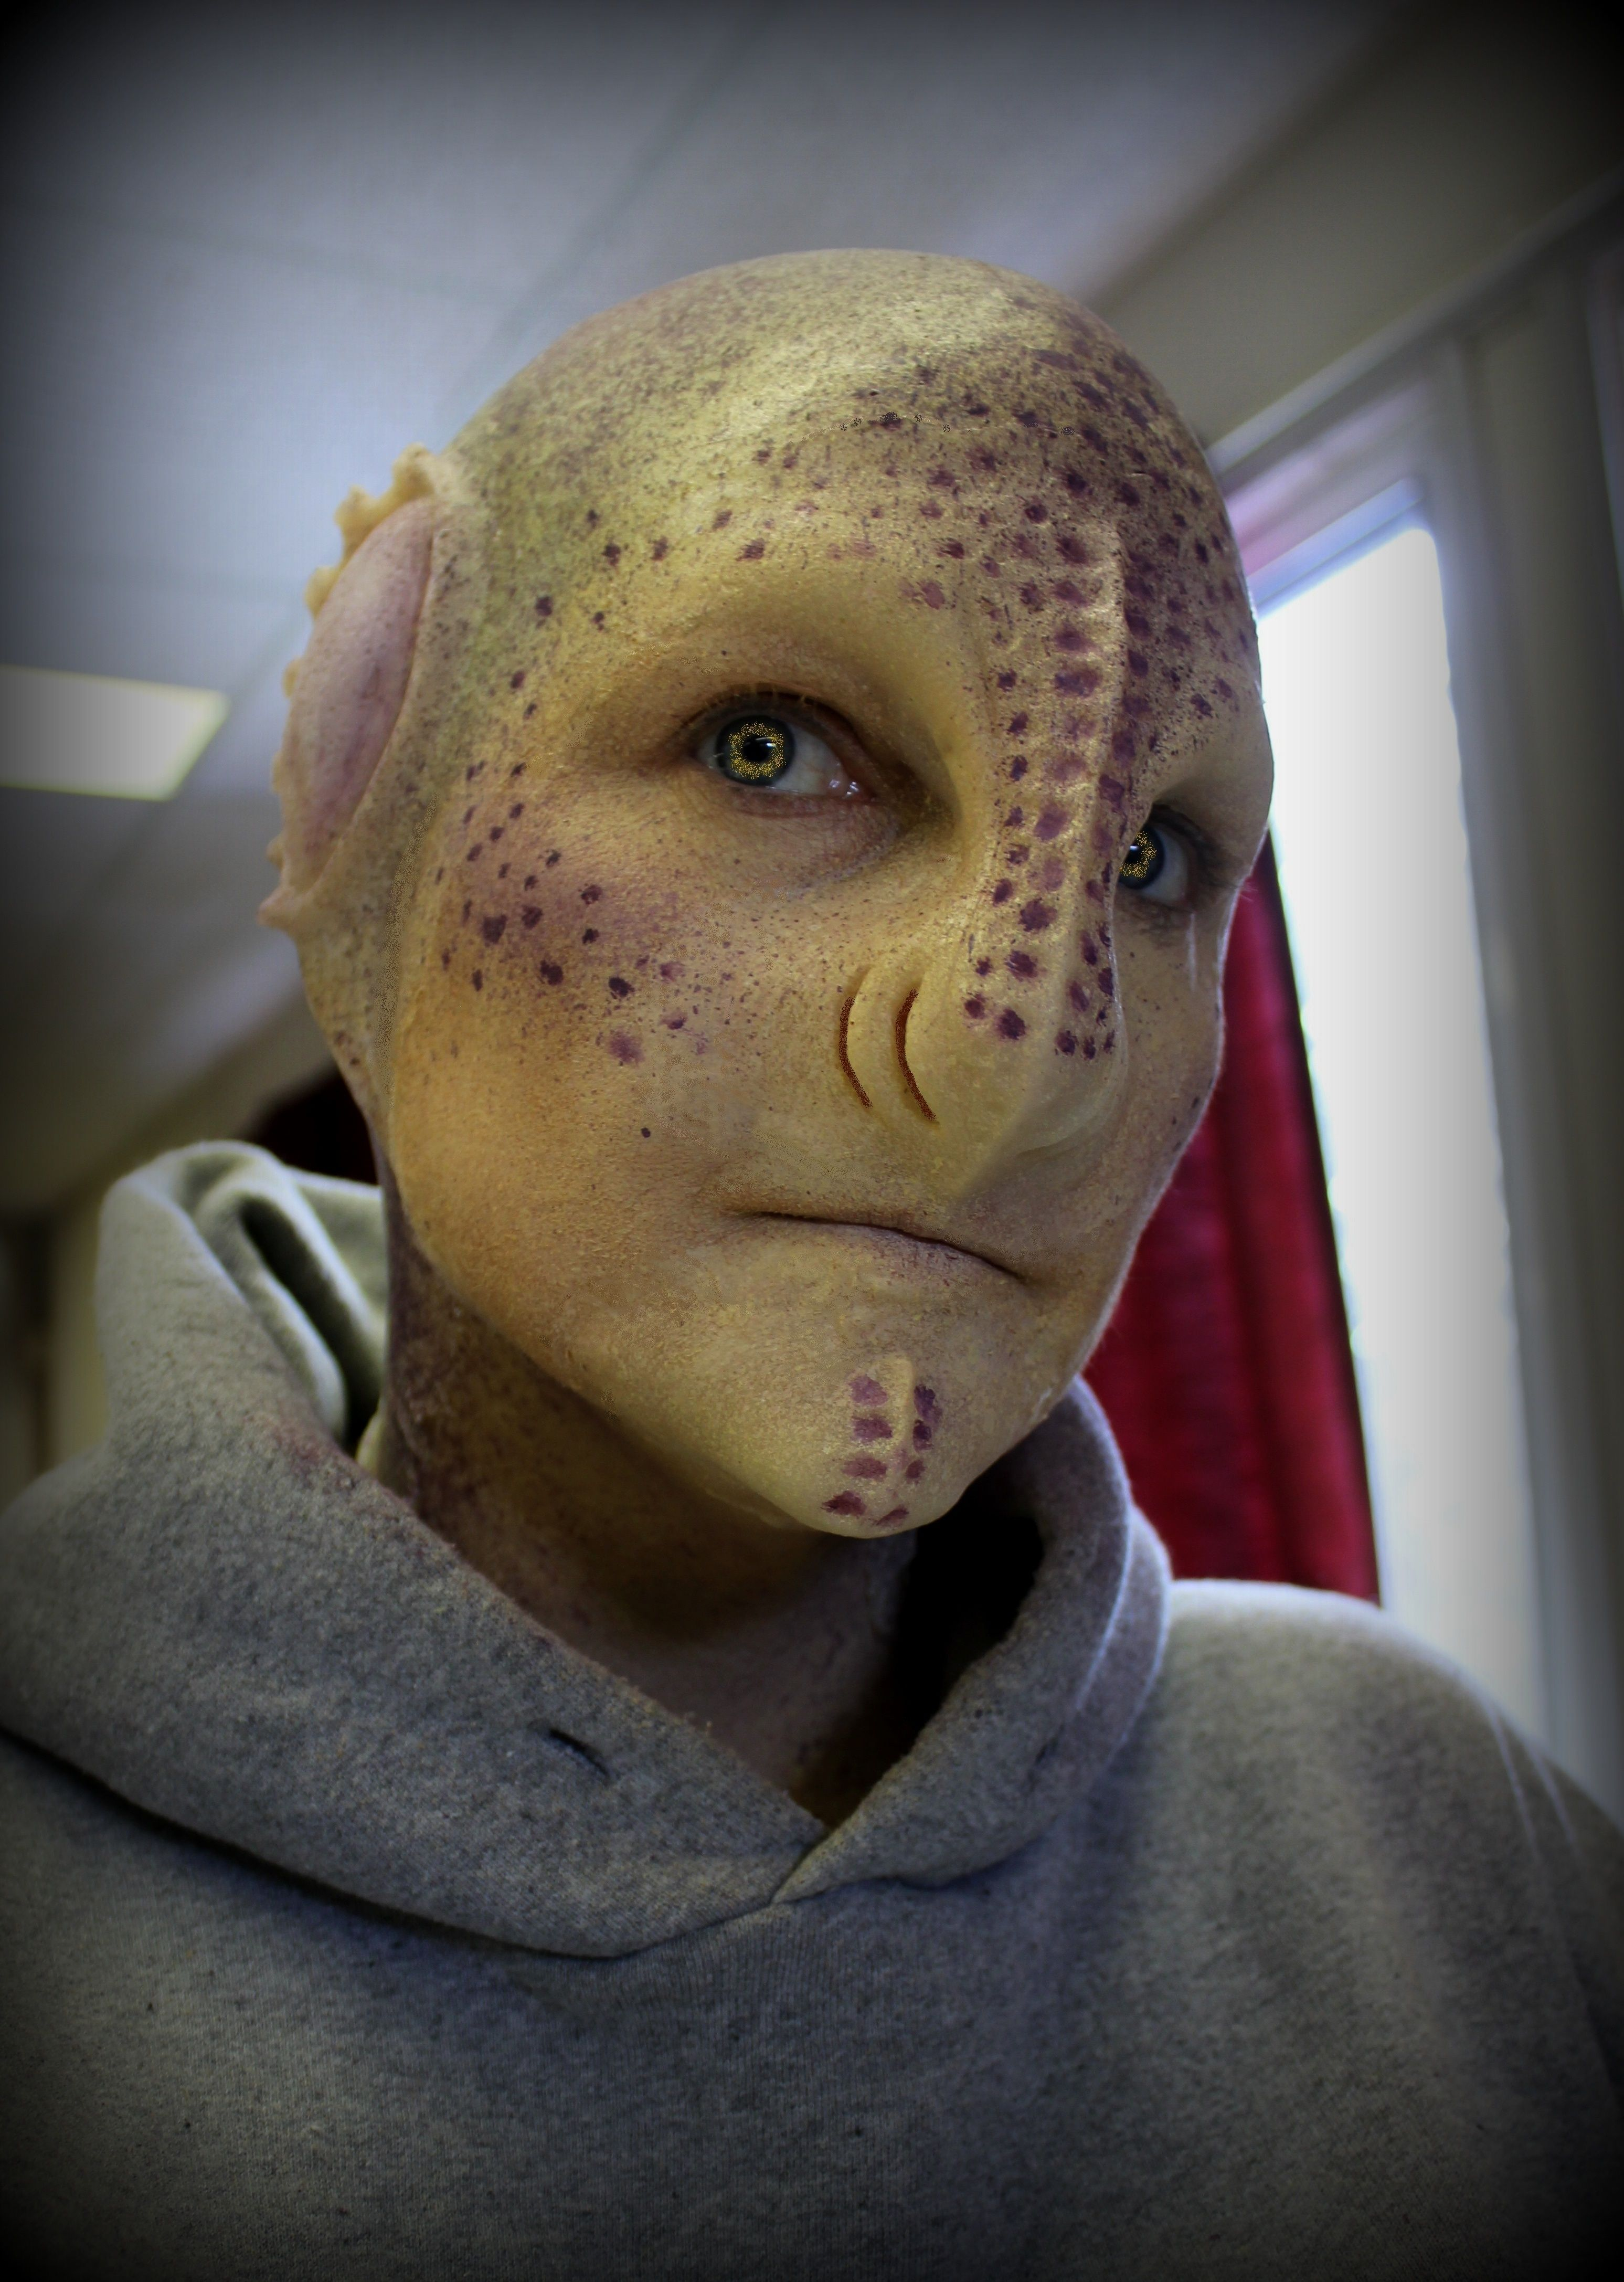 Special Effects Makeup: Prosthetic Alien Makeup By Reel Twisted FX